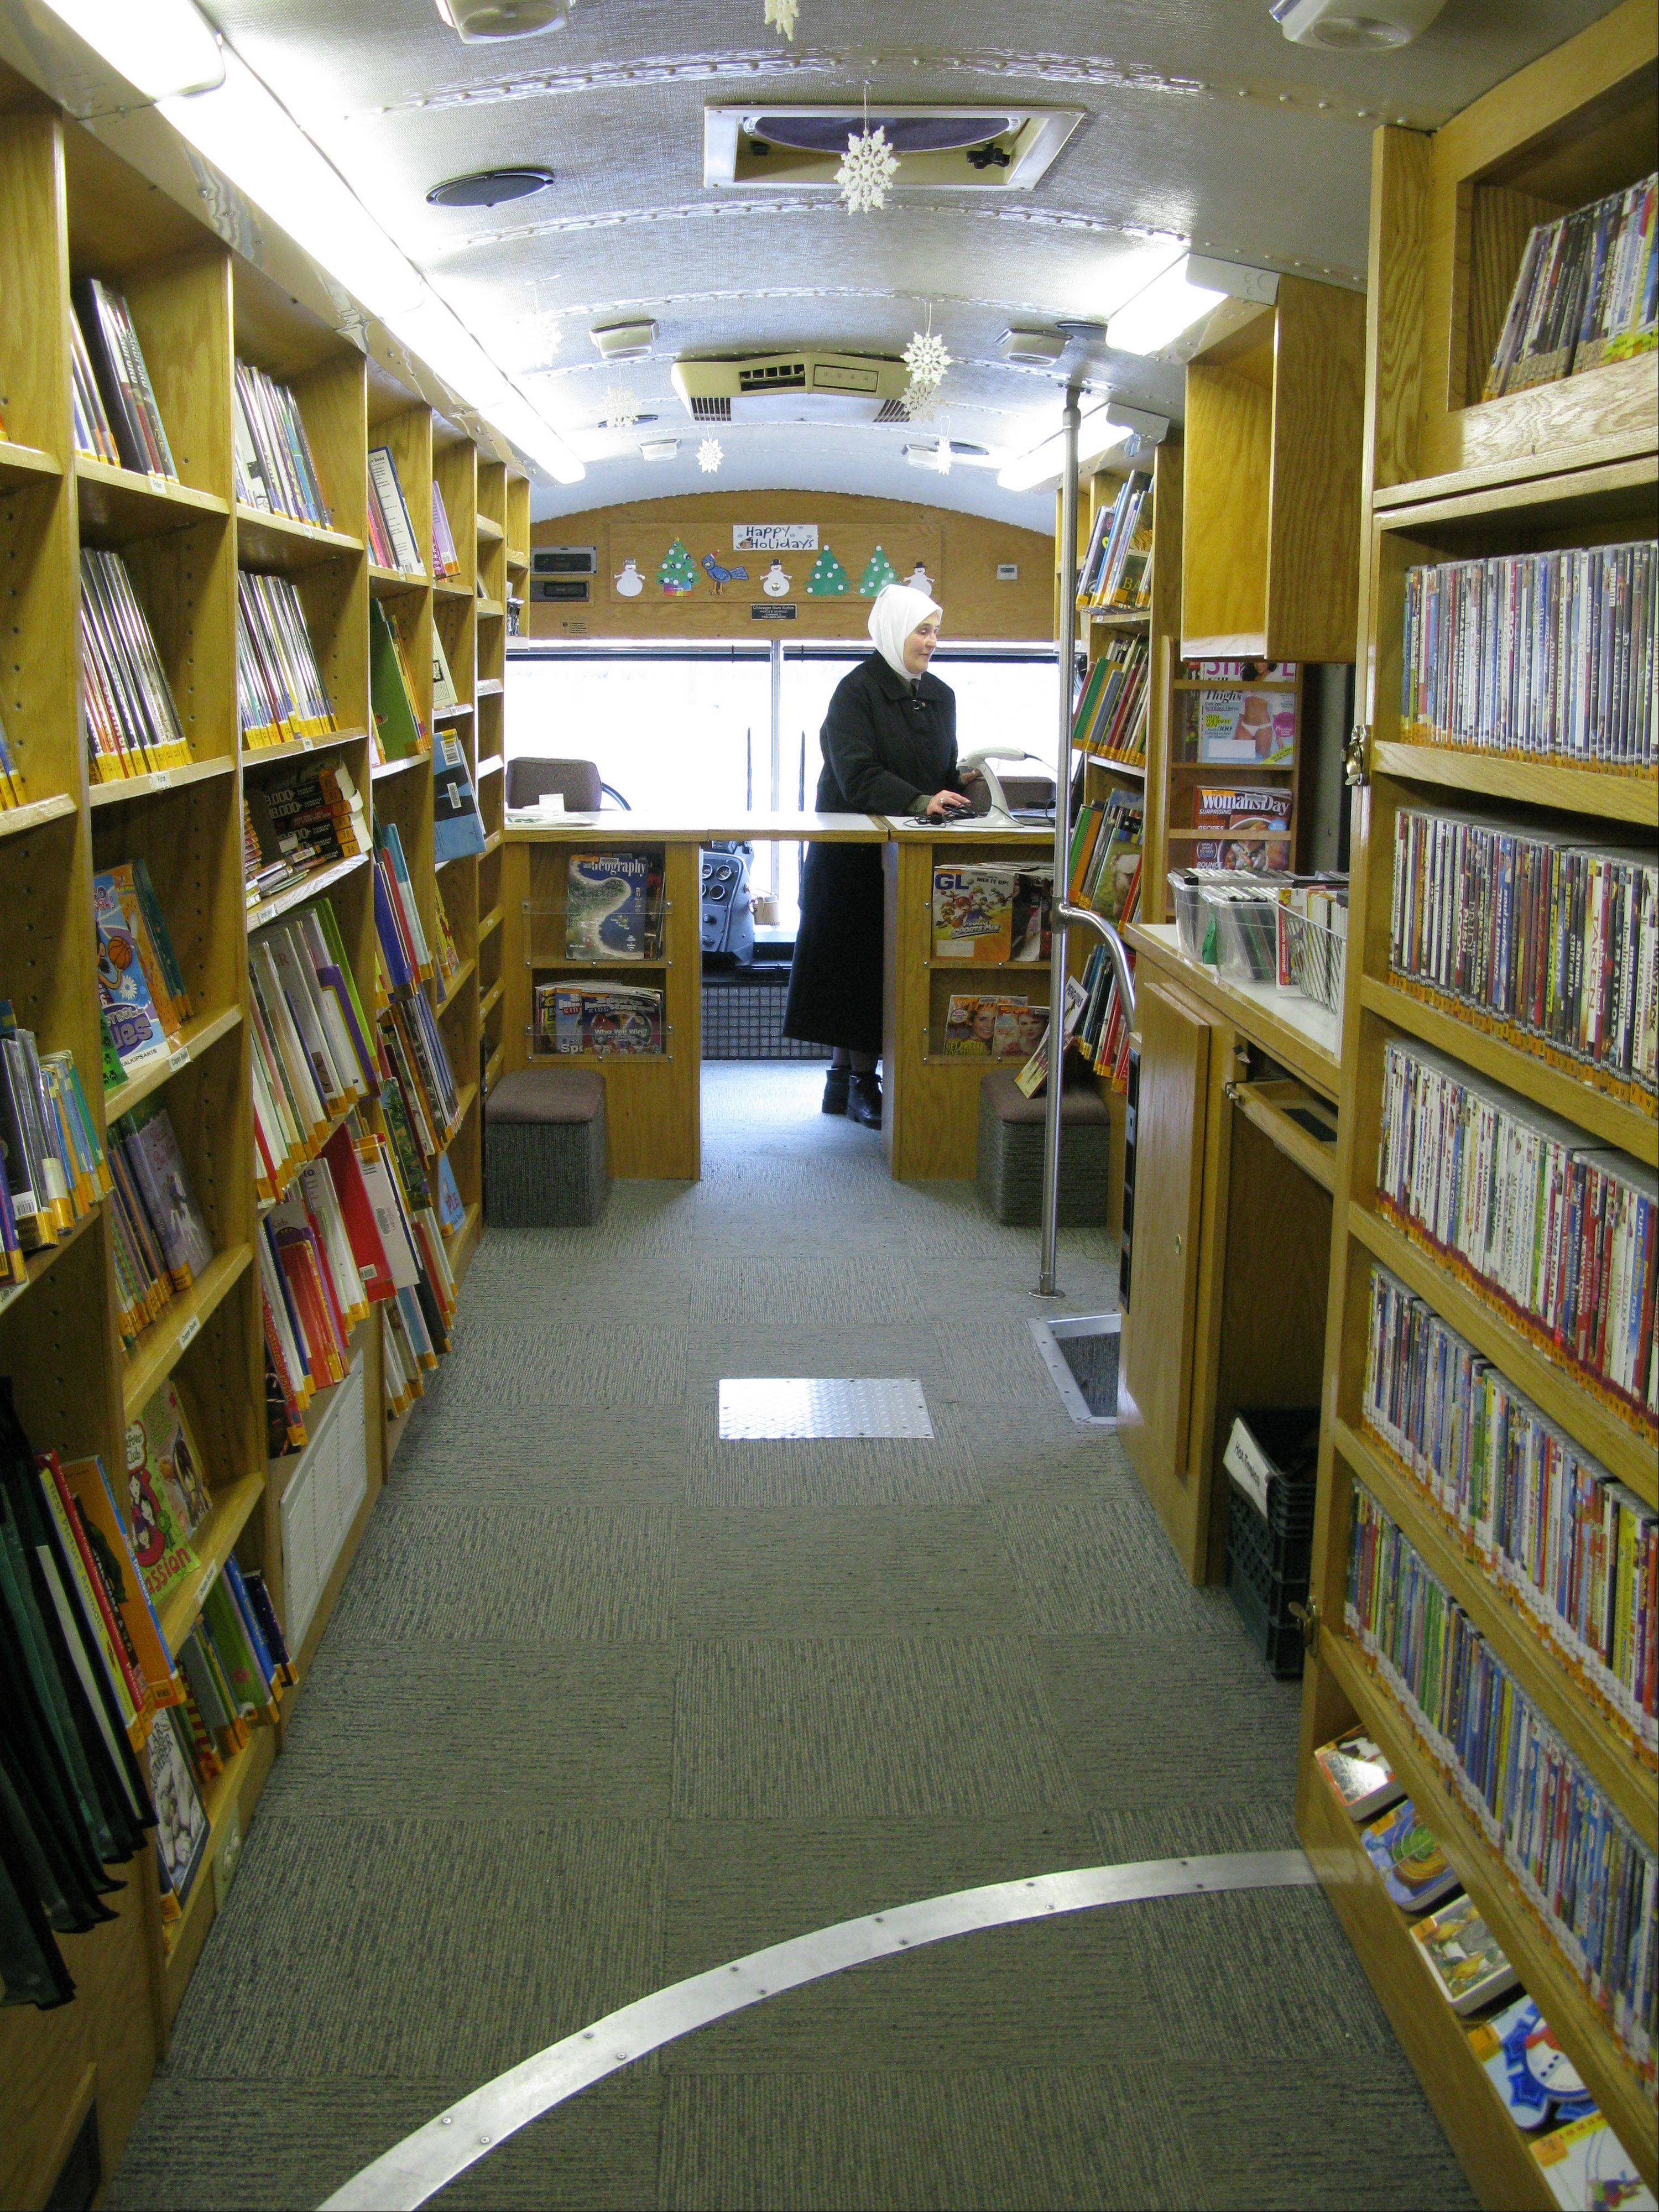 The Des Plaines Public Library's bookmobile is making its final rounds this week. The mobile library retires on Saturday, Dec. 17.